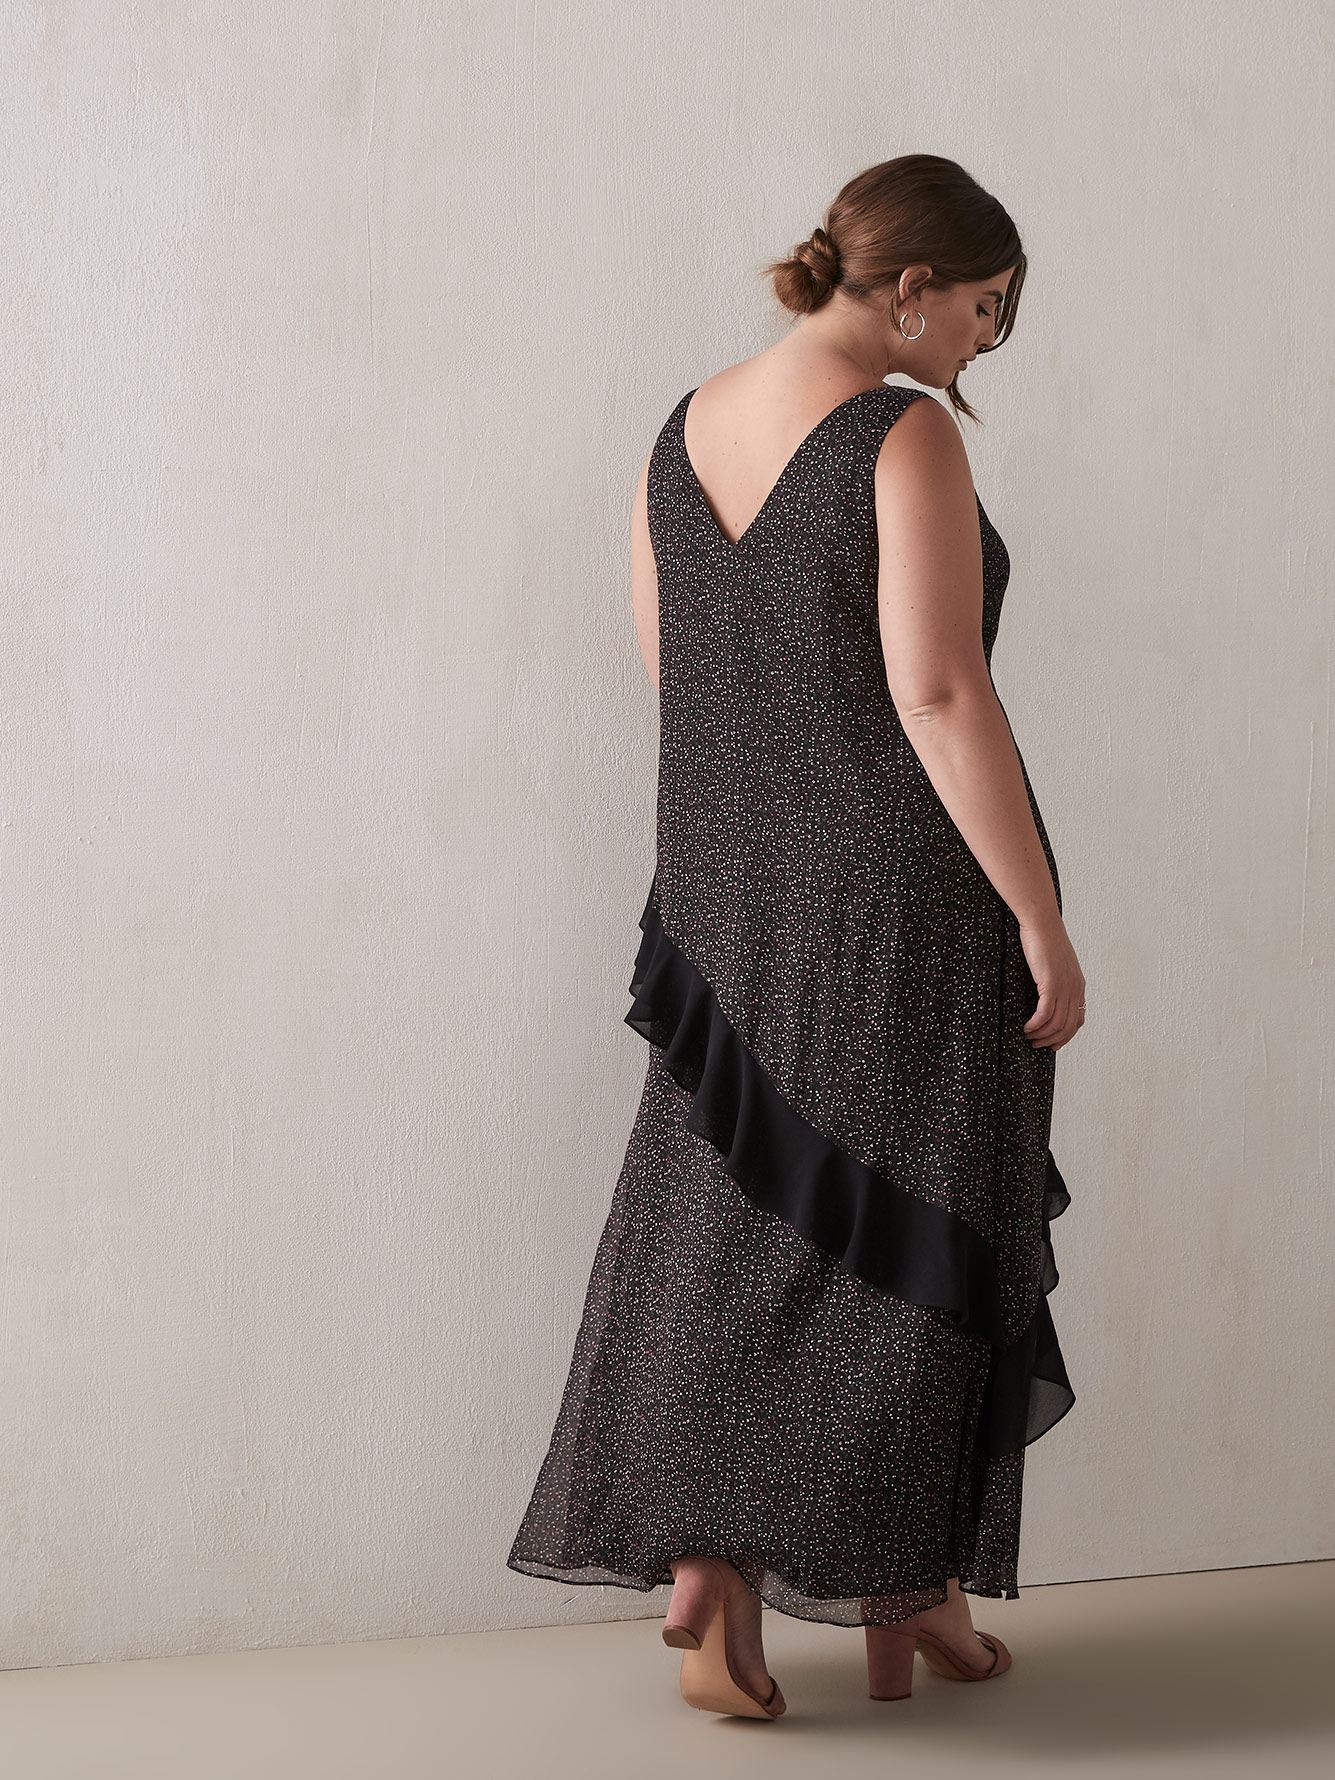 Leta Ruffle Maxi Dress - RACHEL Rachel Roy